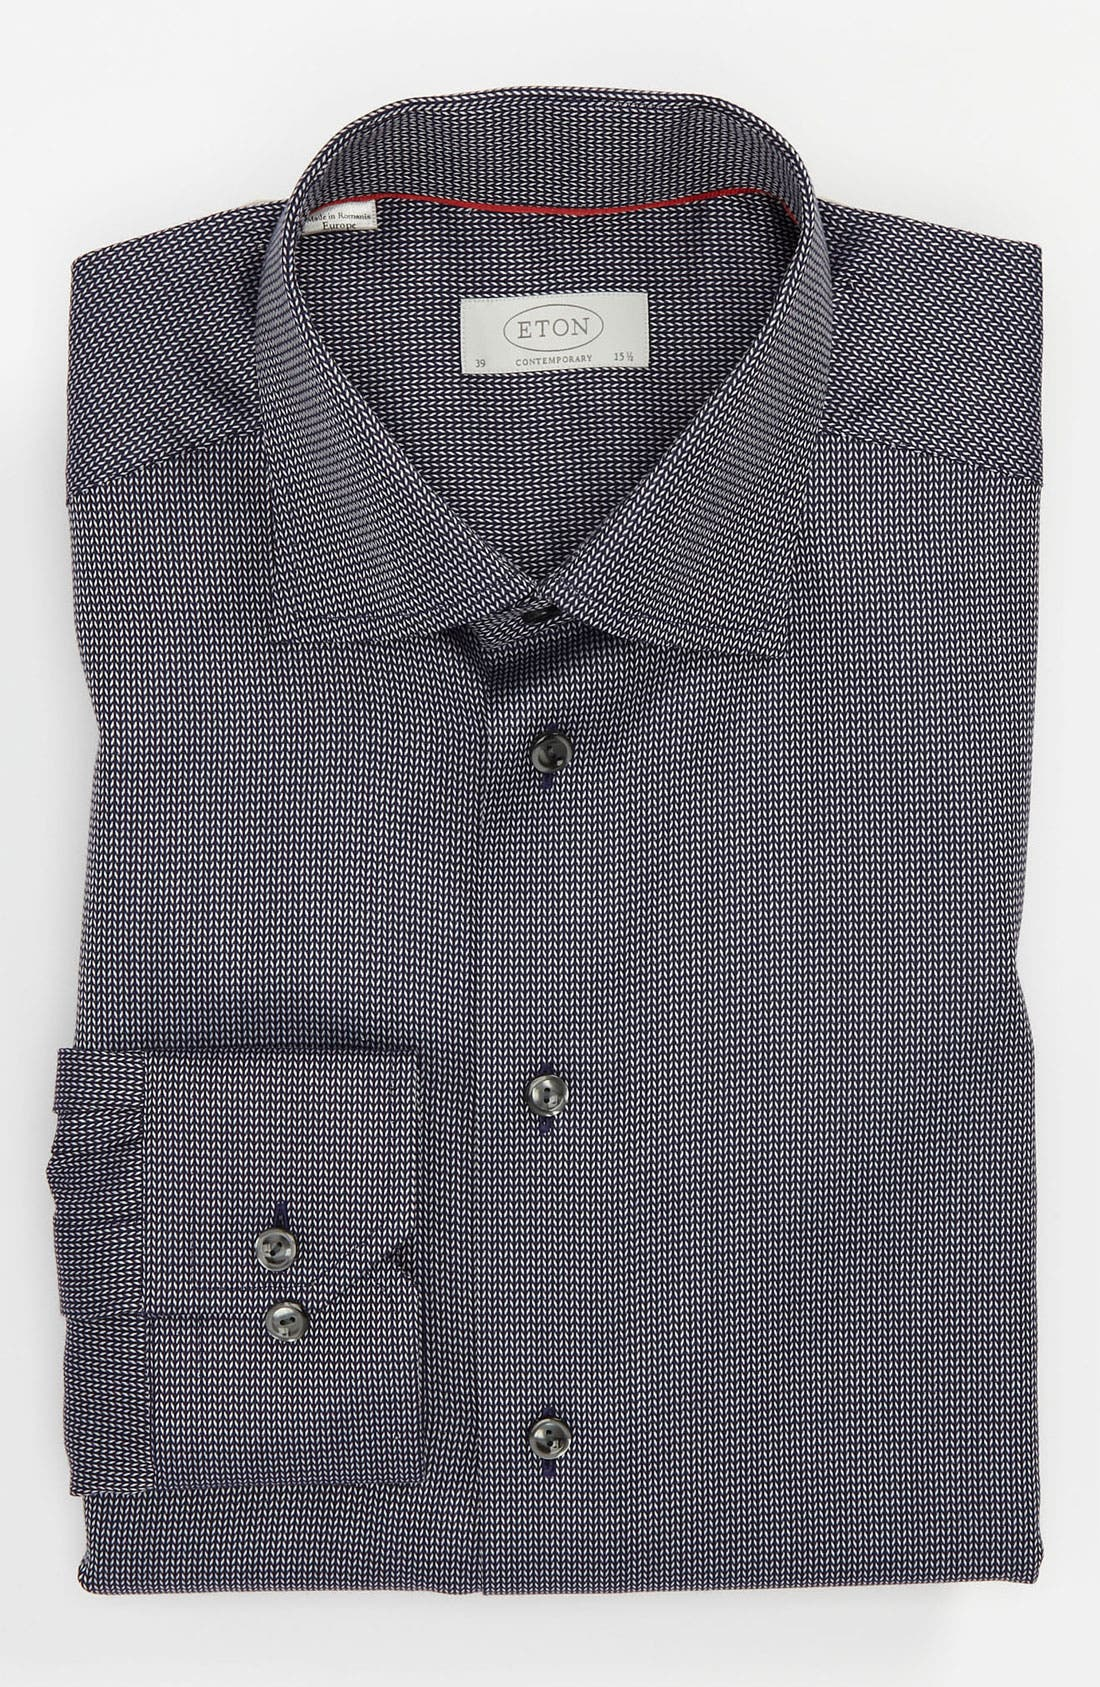 Alternate Image 1 Selected - Eton Contemporary Fit Dress Shirt